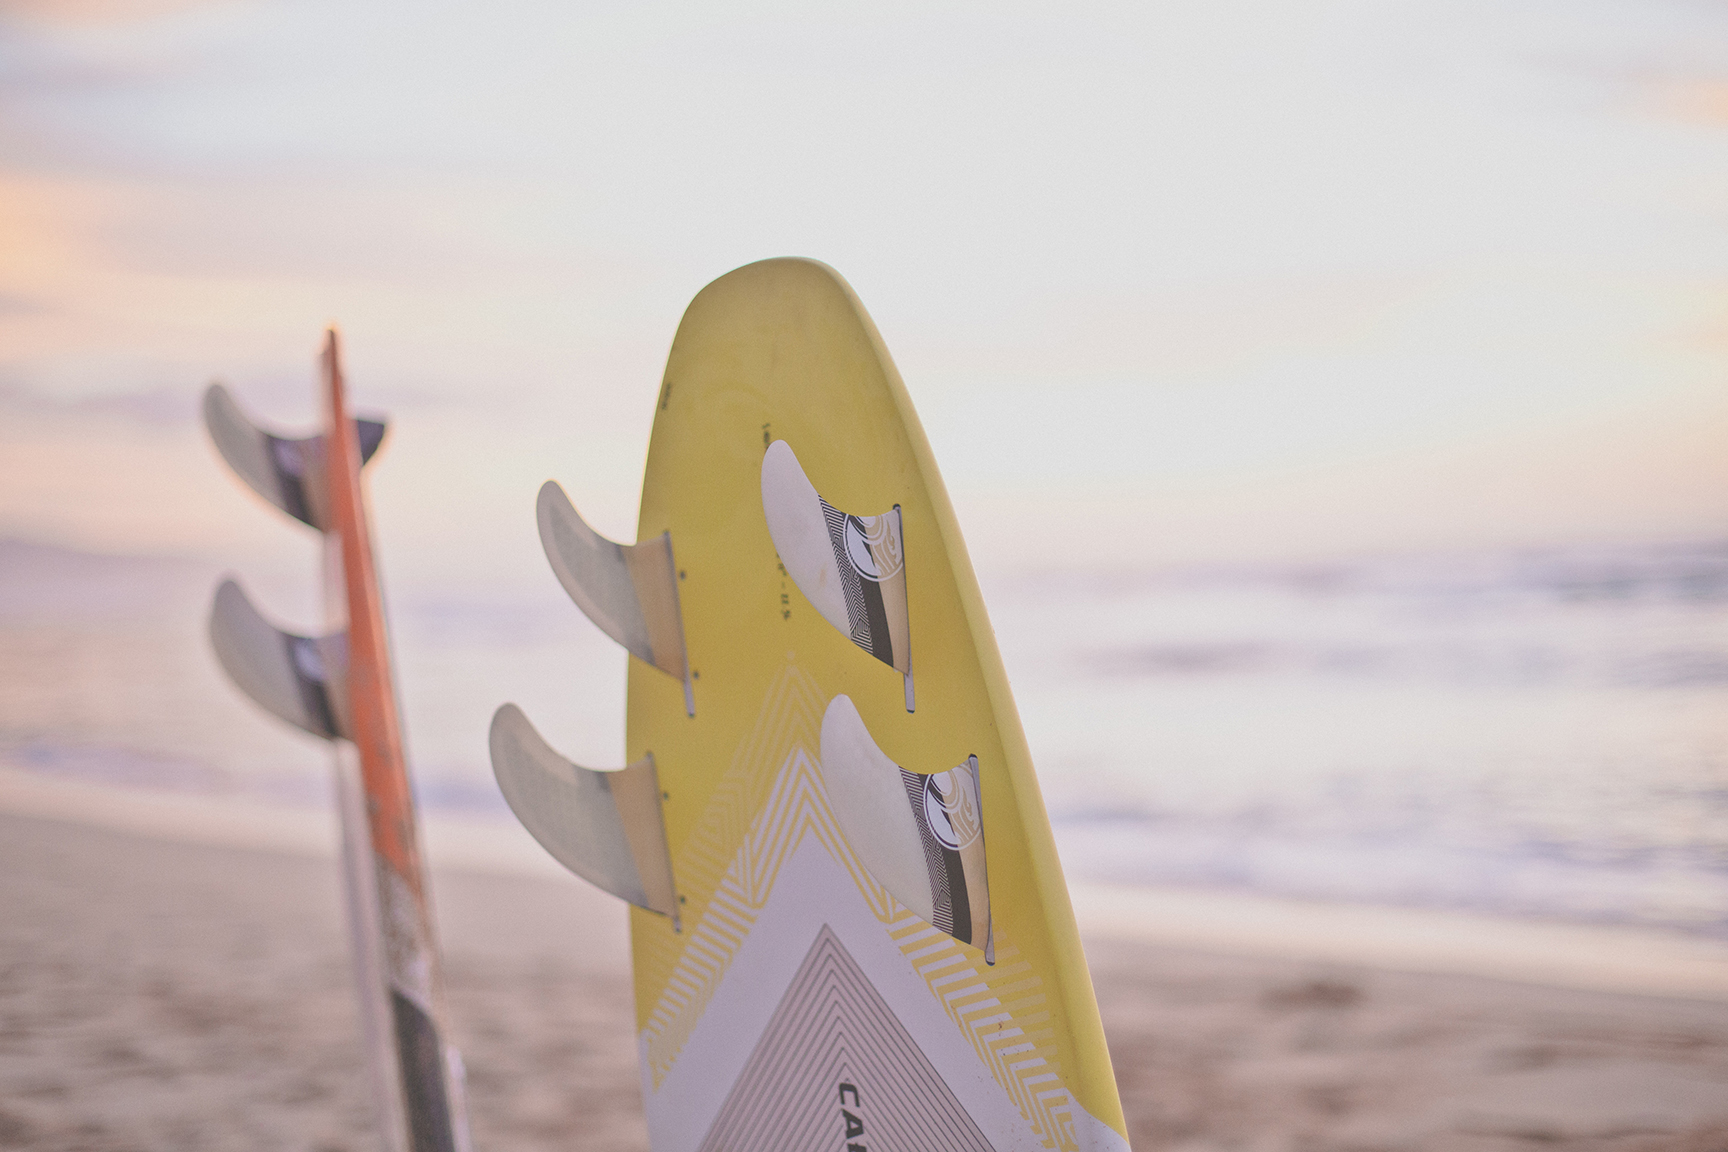 Cabrinha Boards